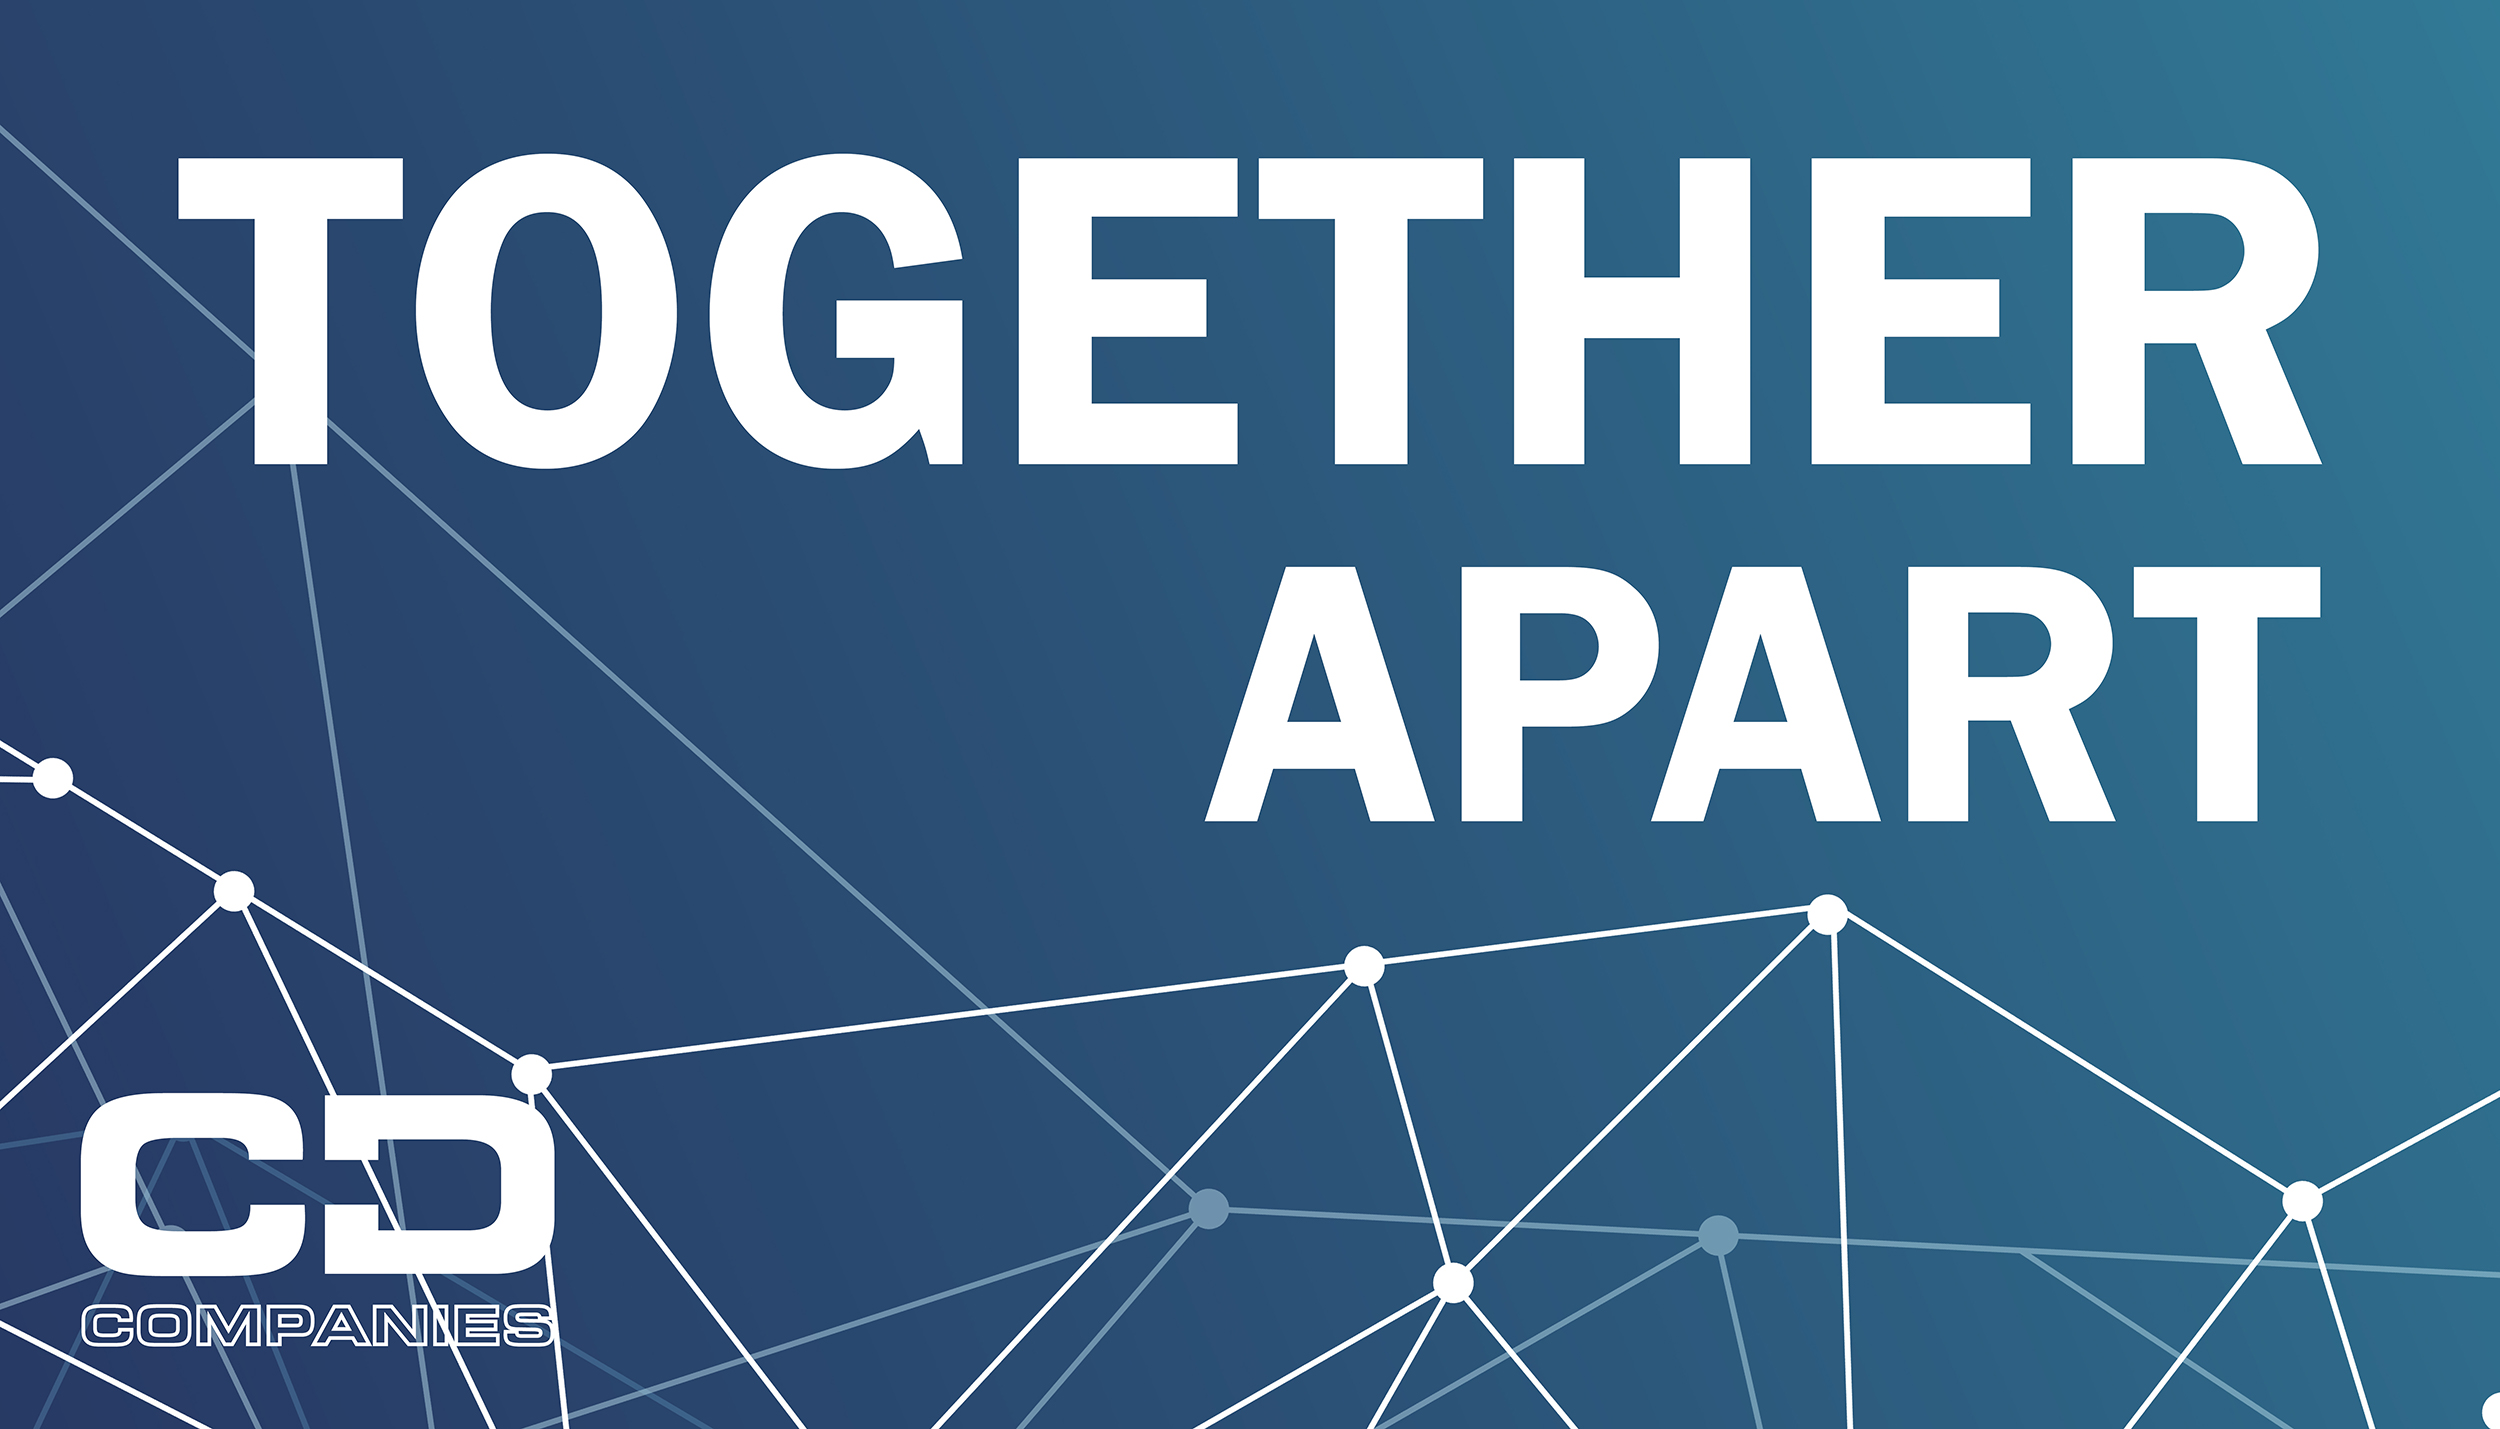 Together Apart CD Companies graphic